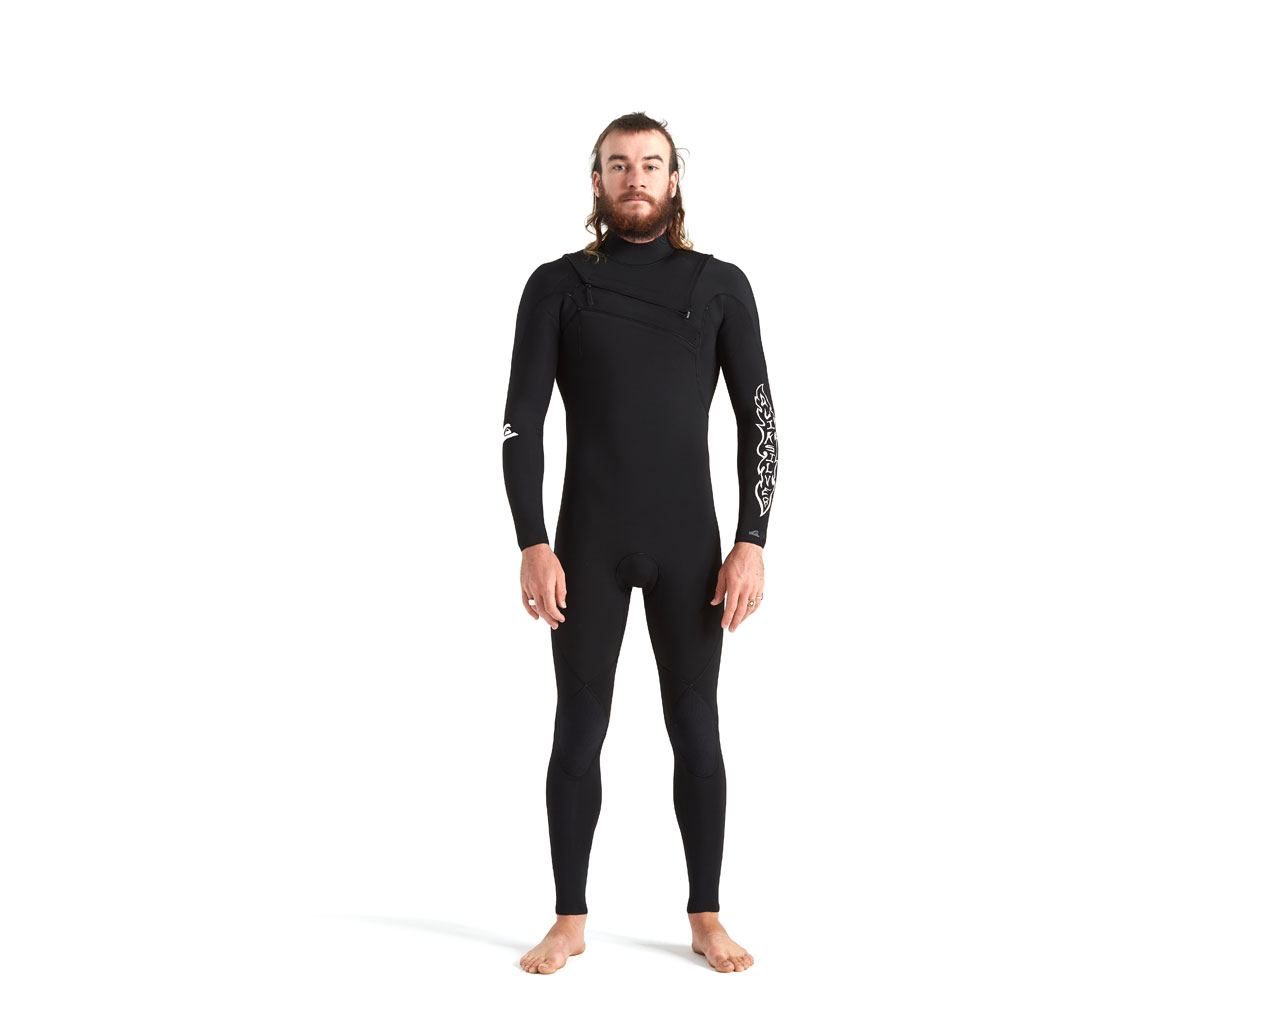 Quiksilver FW20/21 Wetsuit Preview